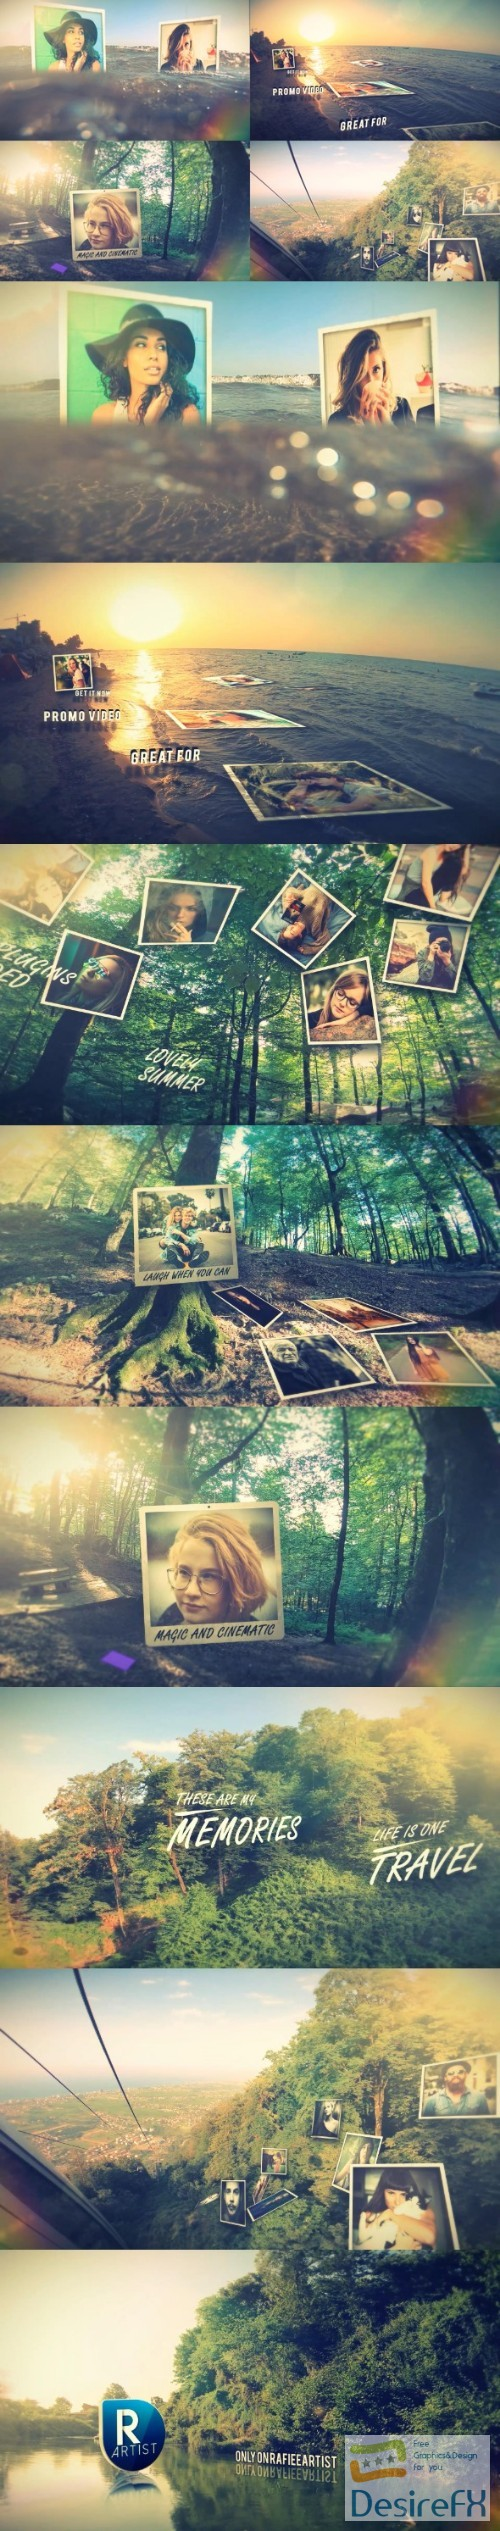 after-effects-projects - Videohive Cinematic Photo Slide 22381060